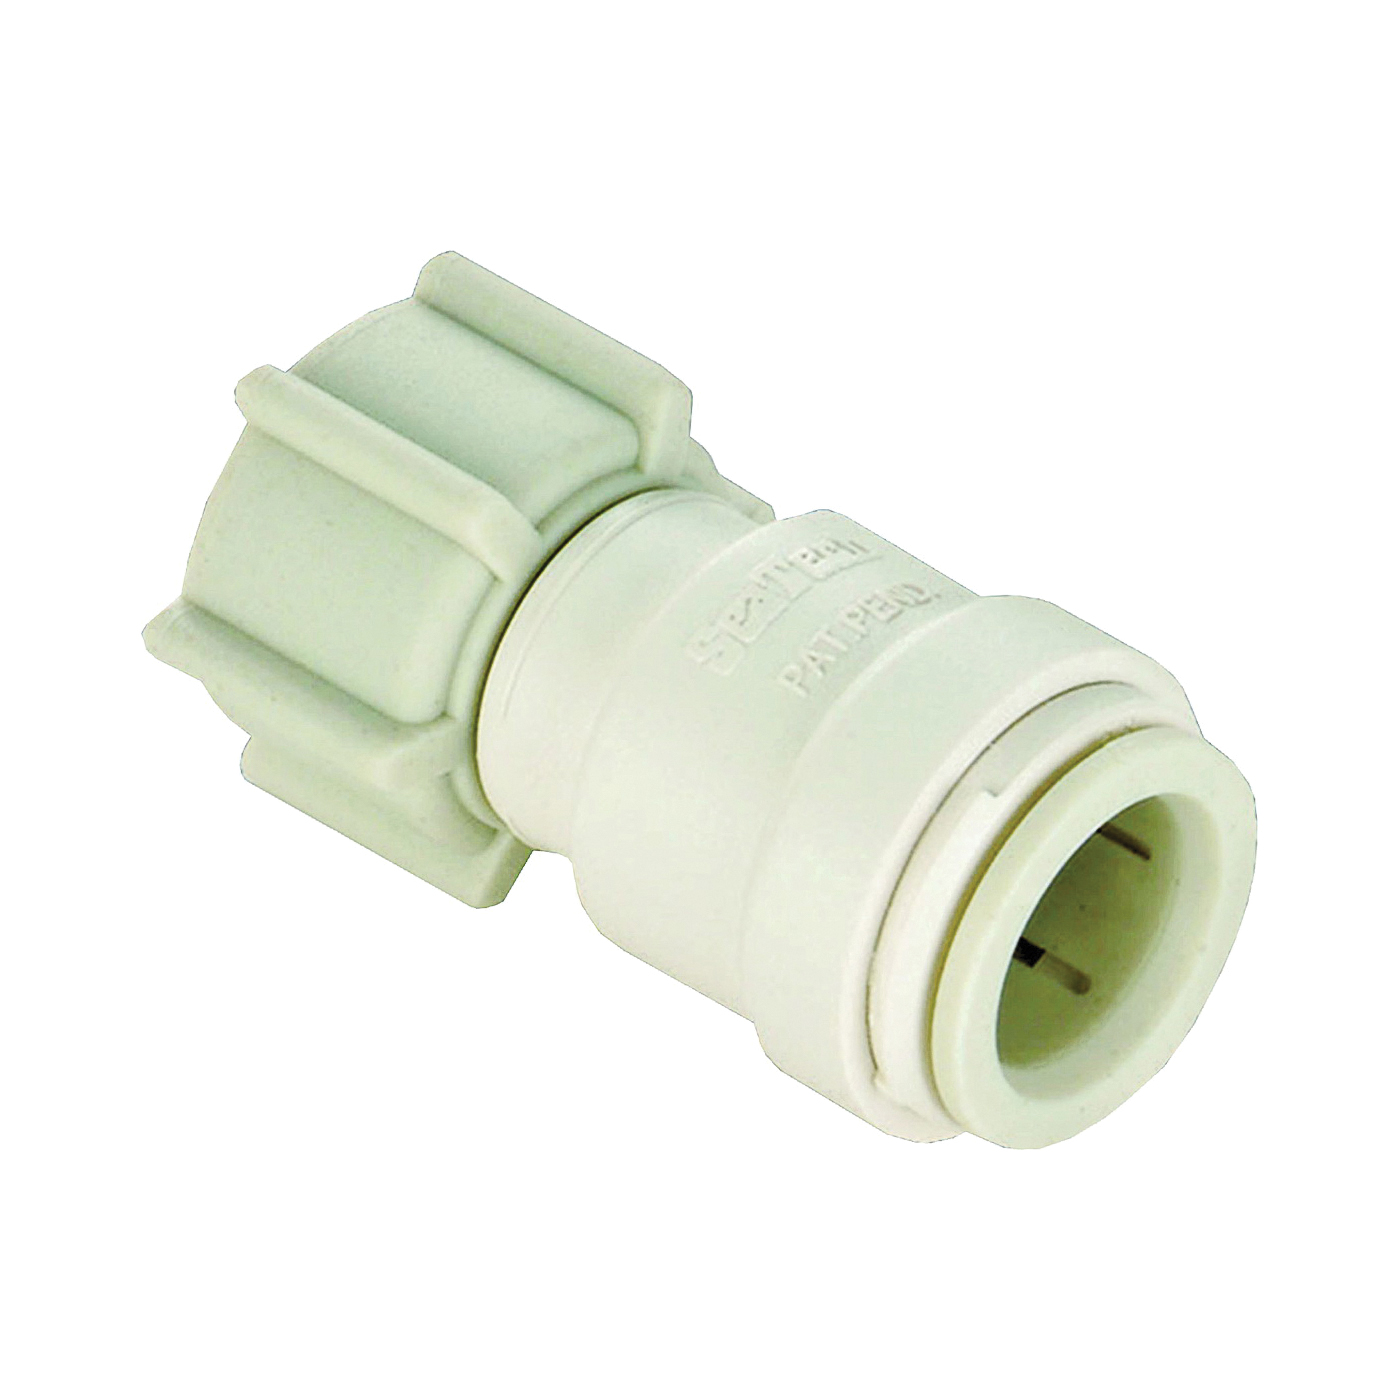 Picture of Watts 35 Series 3510-1008 Female Connector, 1/2 in CTS, 1/2 in NPS